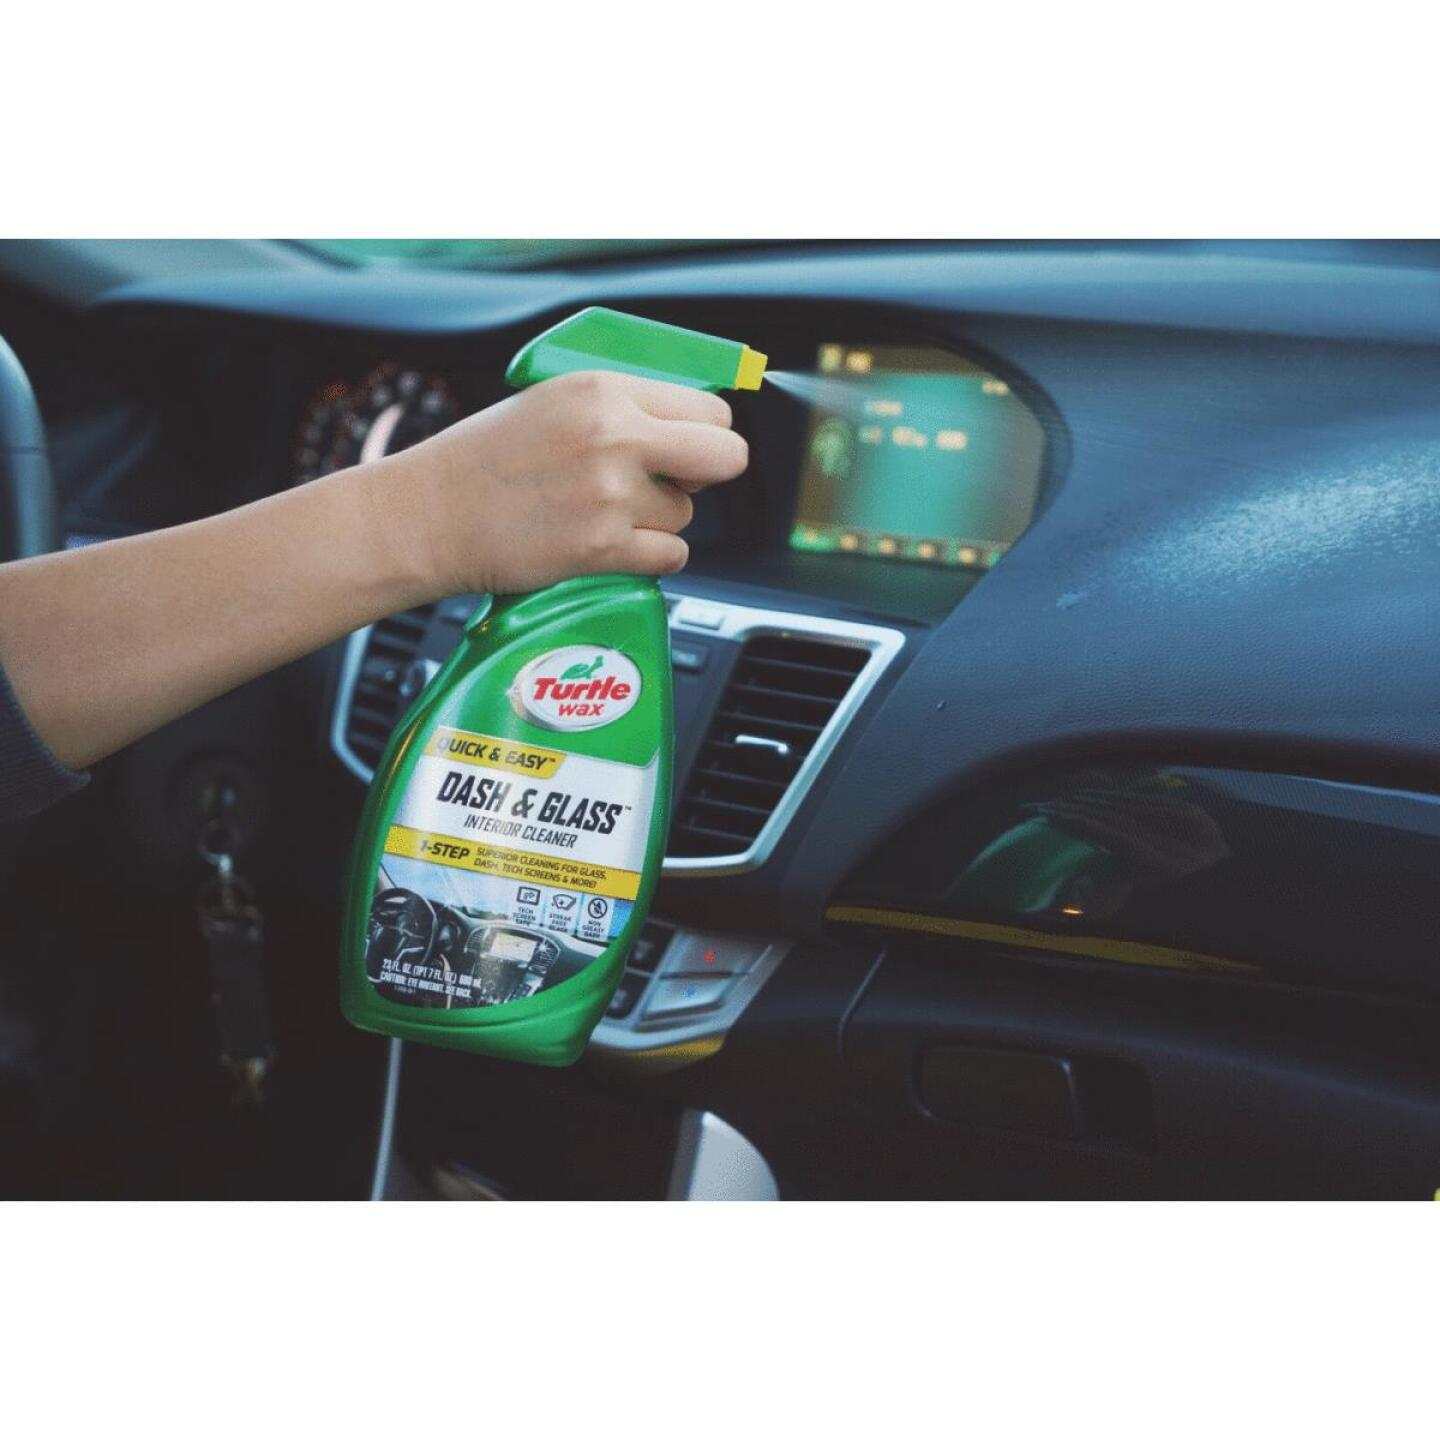 Turtle Wax Dash & Glass 23 Oz. Trigger Spray Auto Interior Cleaner Image 2